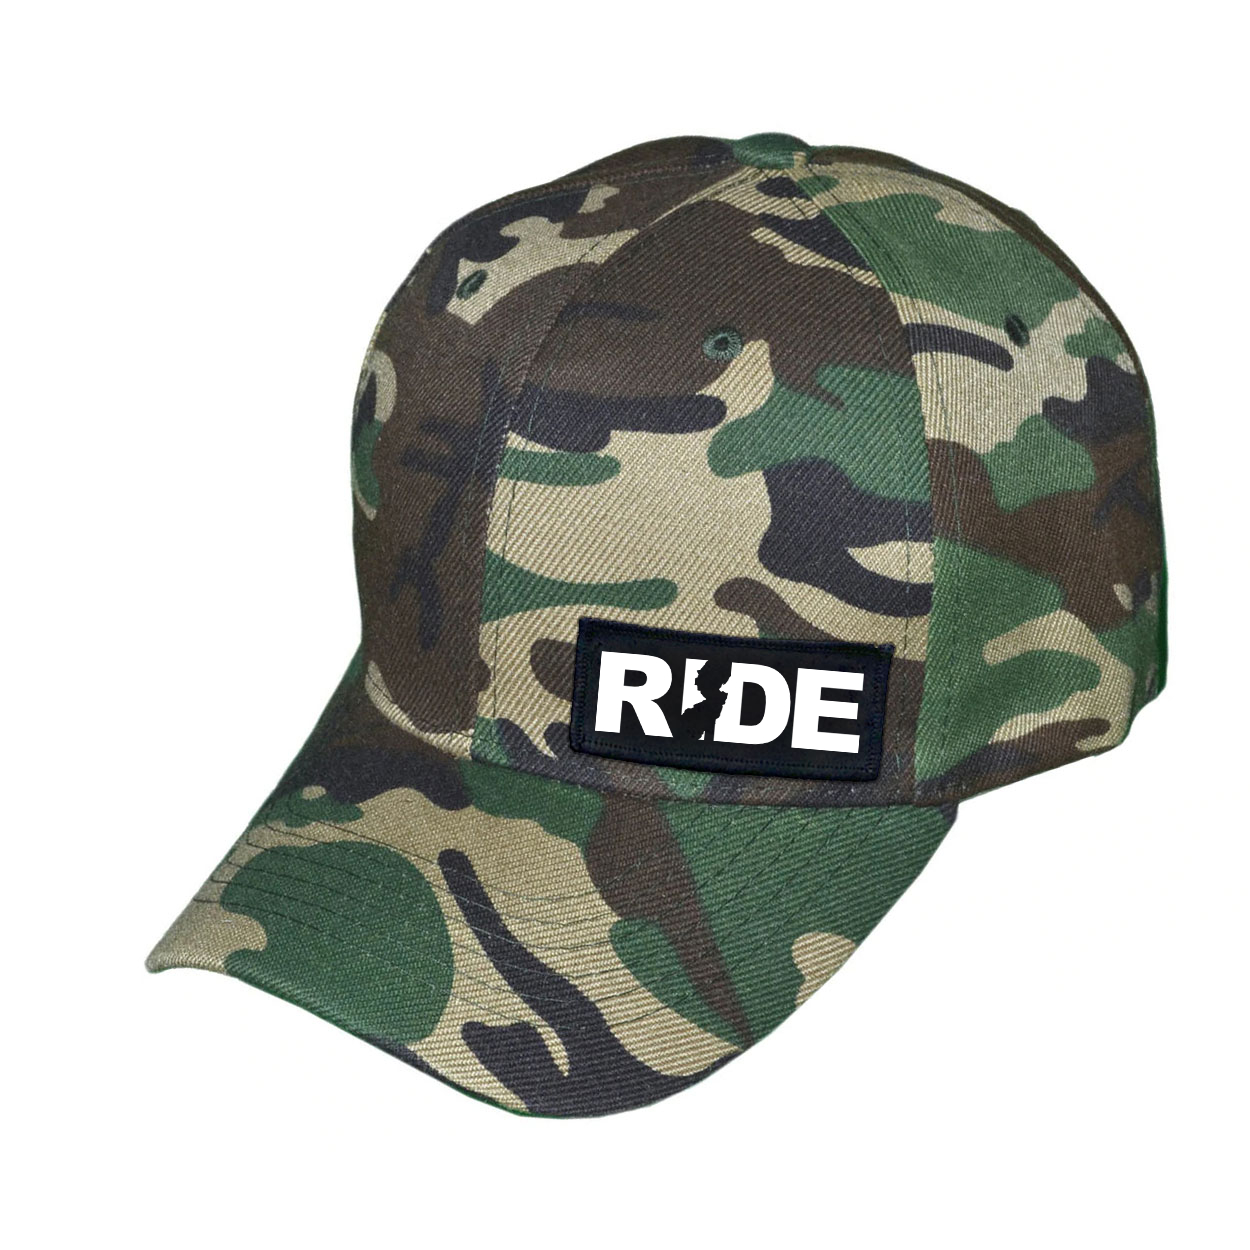 Ride New Jersey Night Out Woven Patch Hat Camo (White Logo)